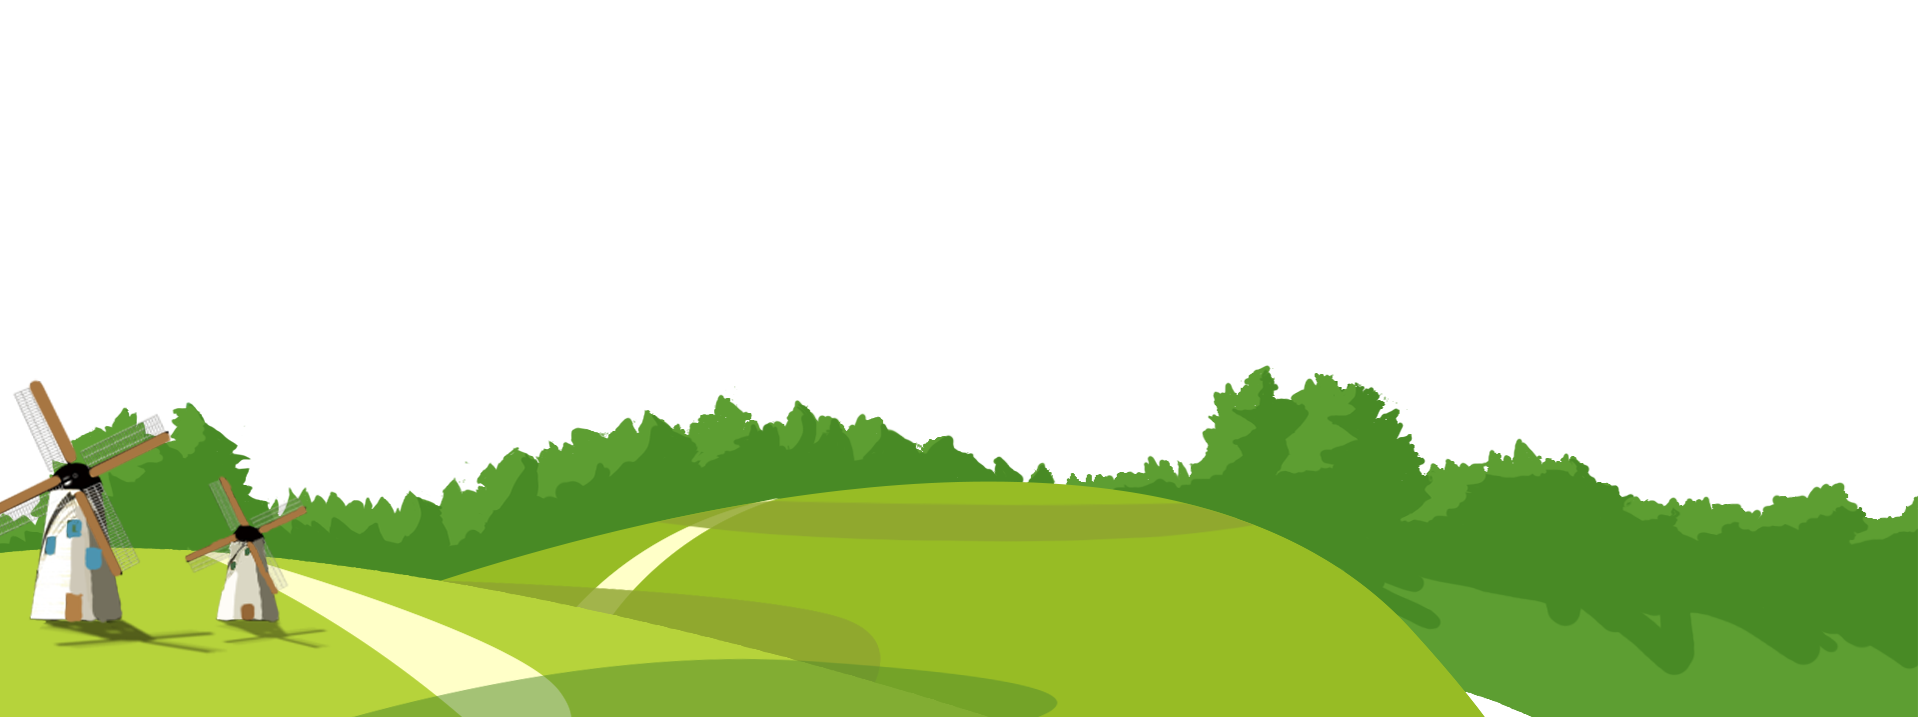 Cartoon forest png. Animation road background material